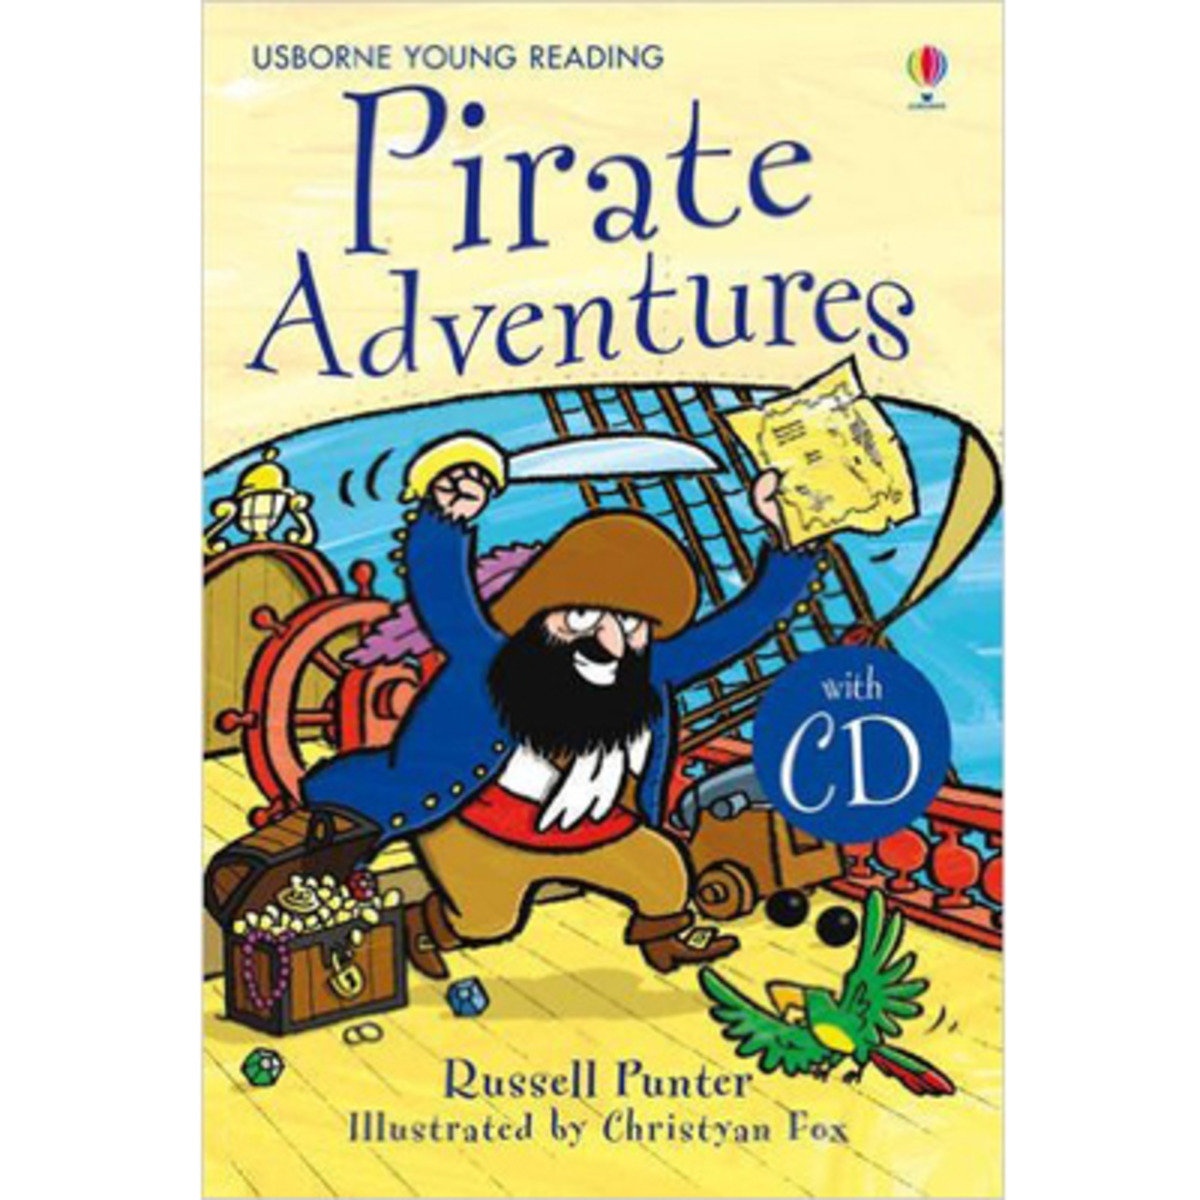 Pirate Adventures-First Reading with CD